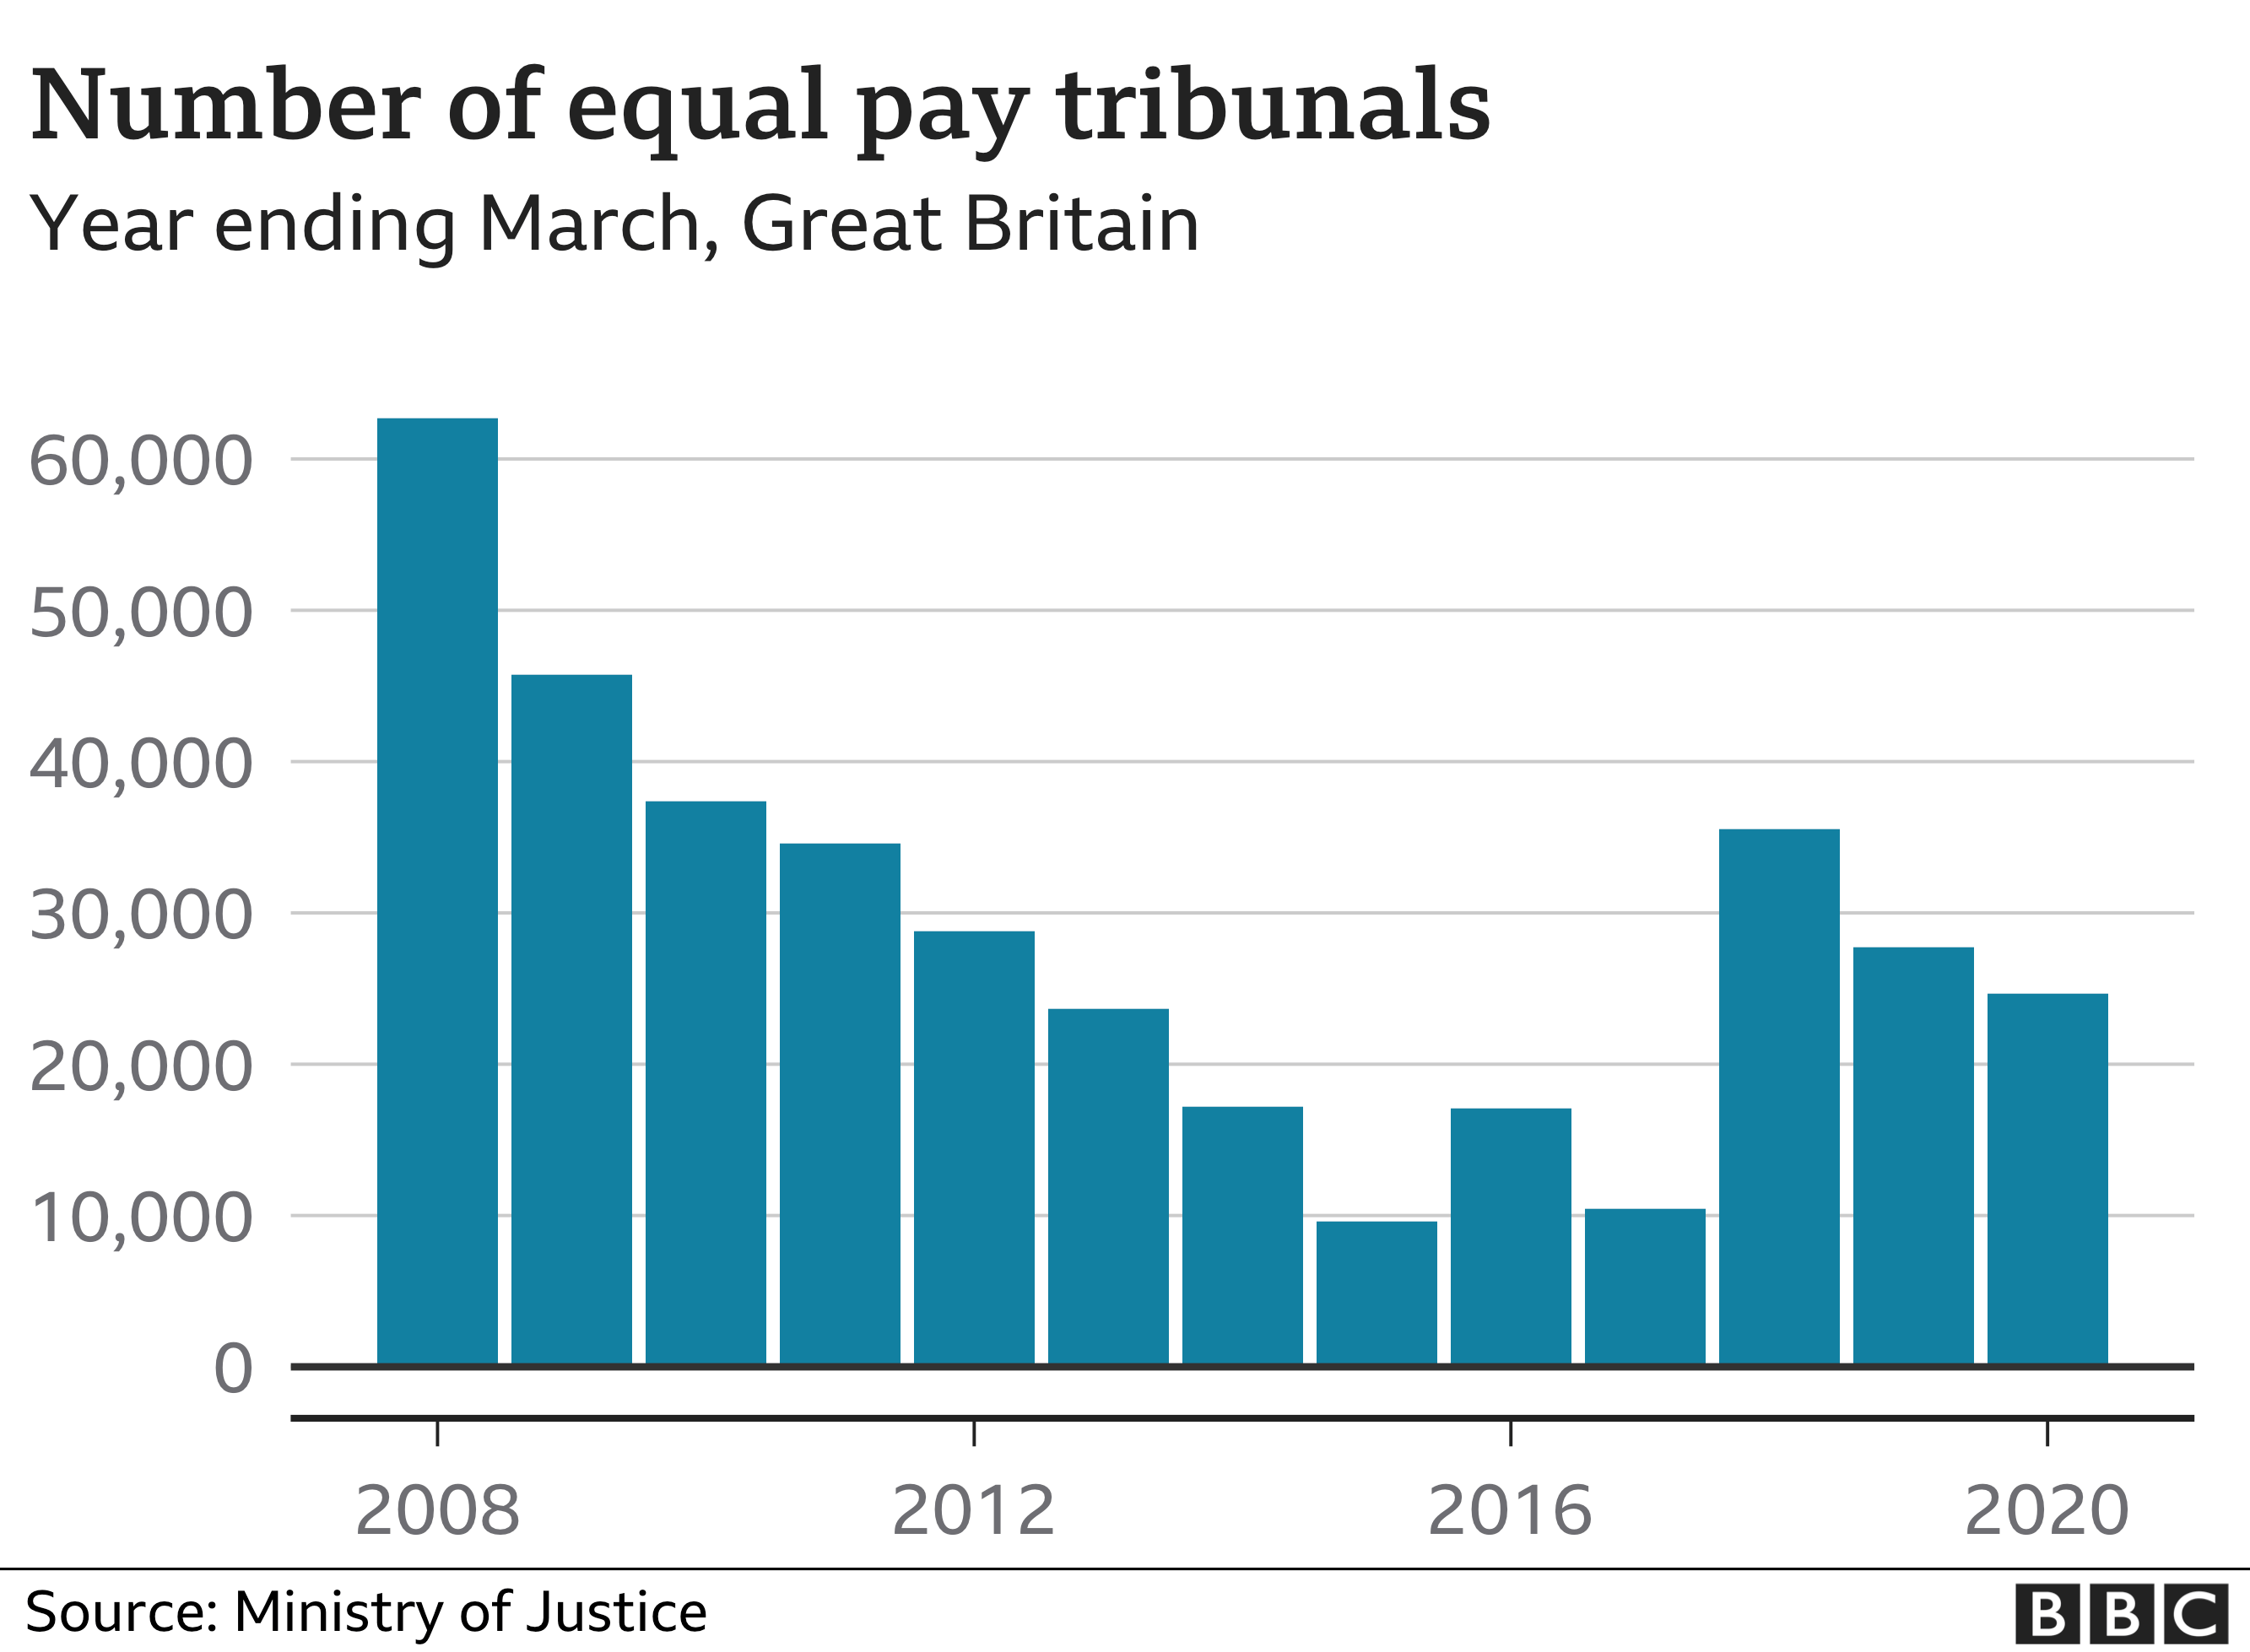 Number of equal pay tribunals bar chart